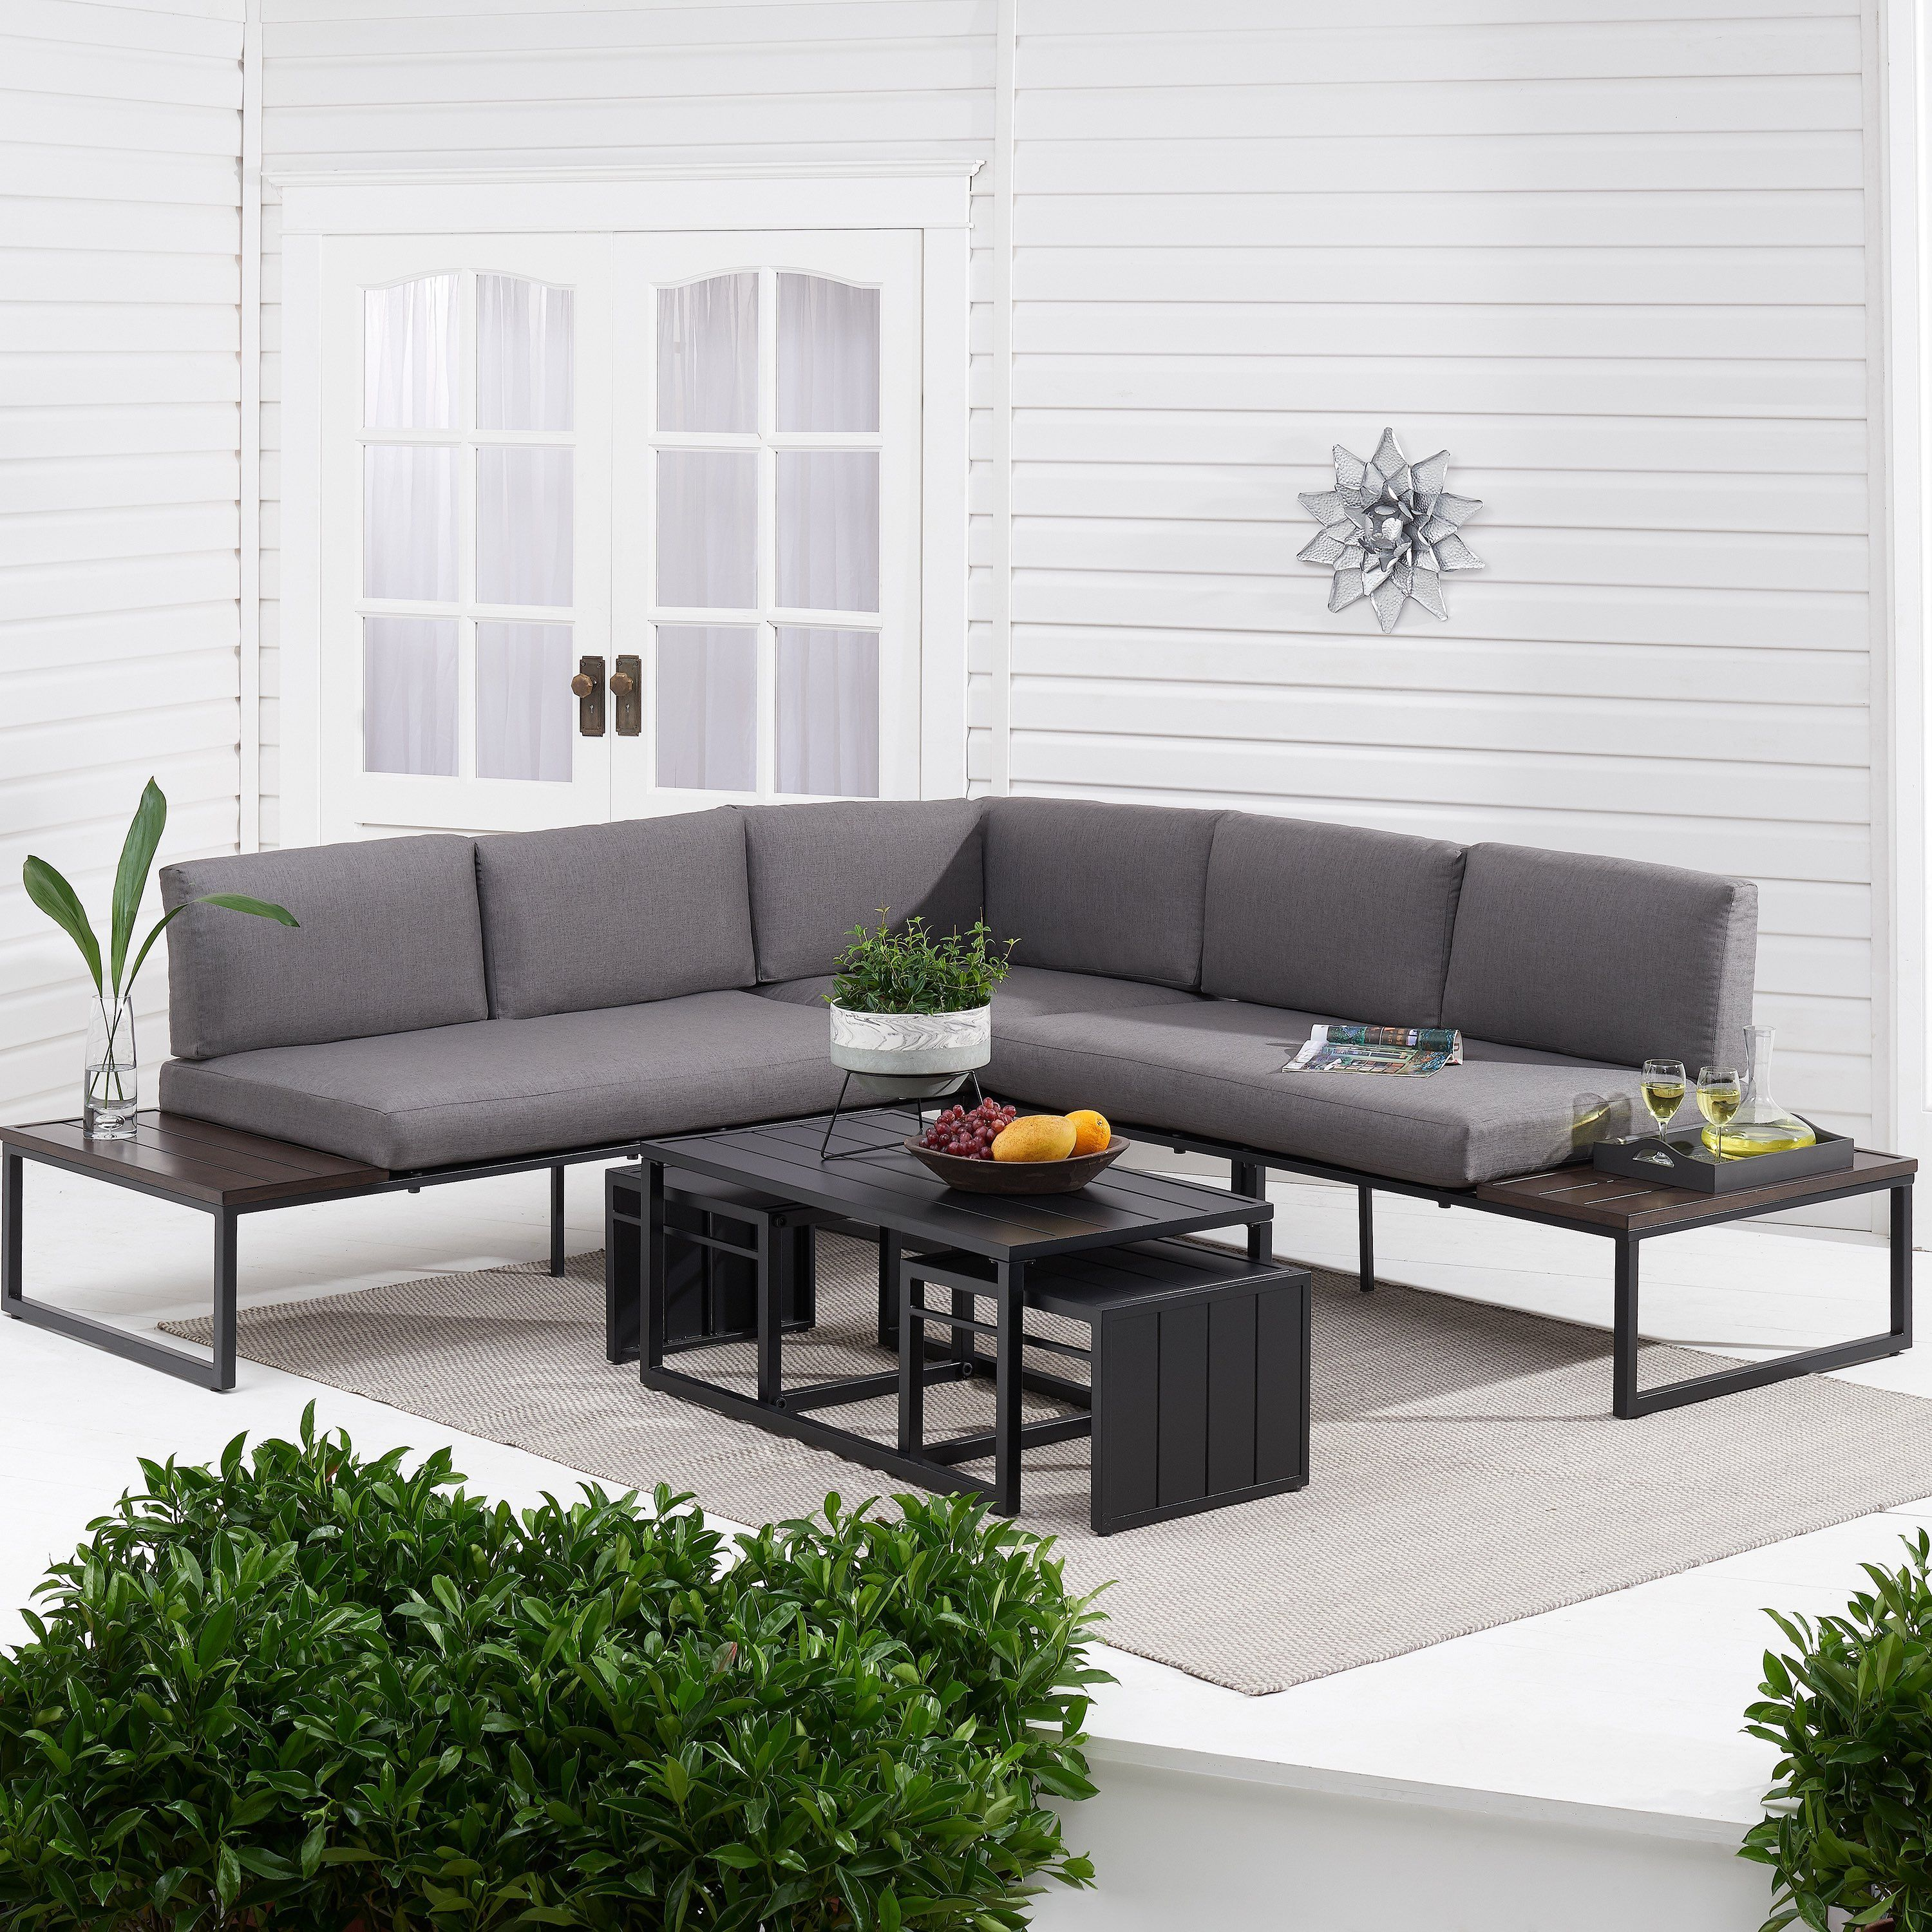 Patio Garden Patio Sectional Sectional Patio Furniture Patio